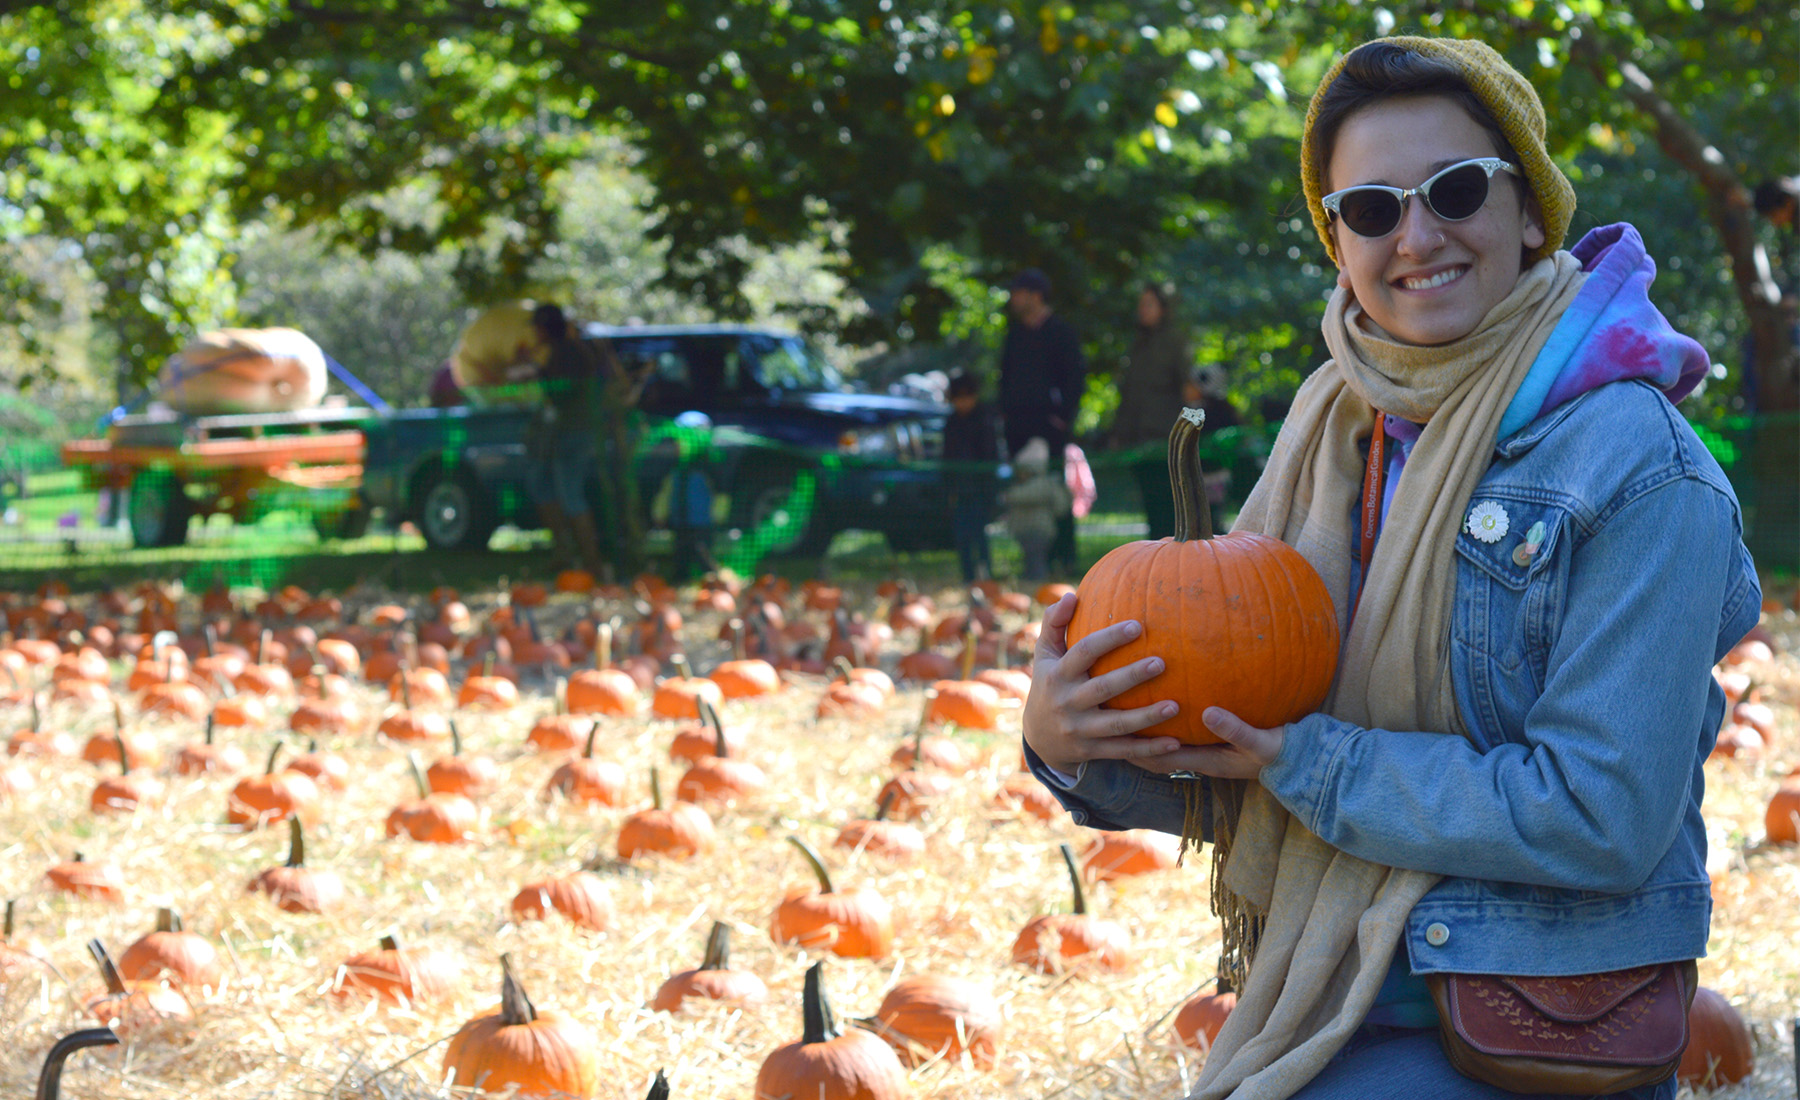 harvest festival ideas for adults